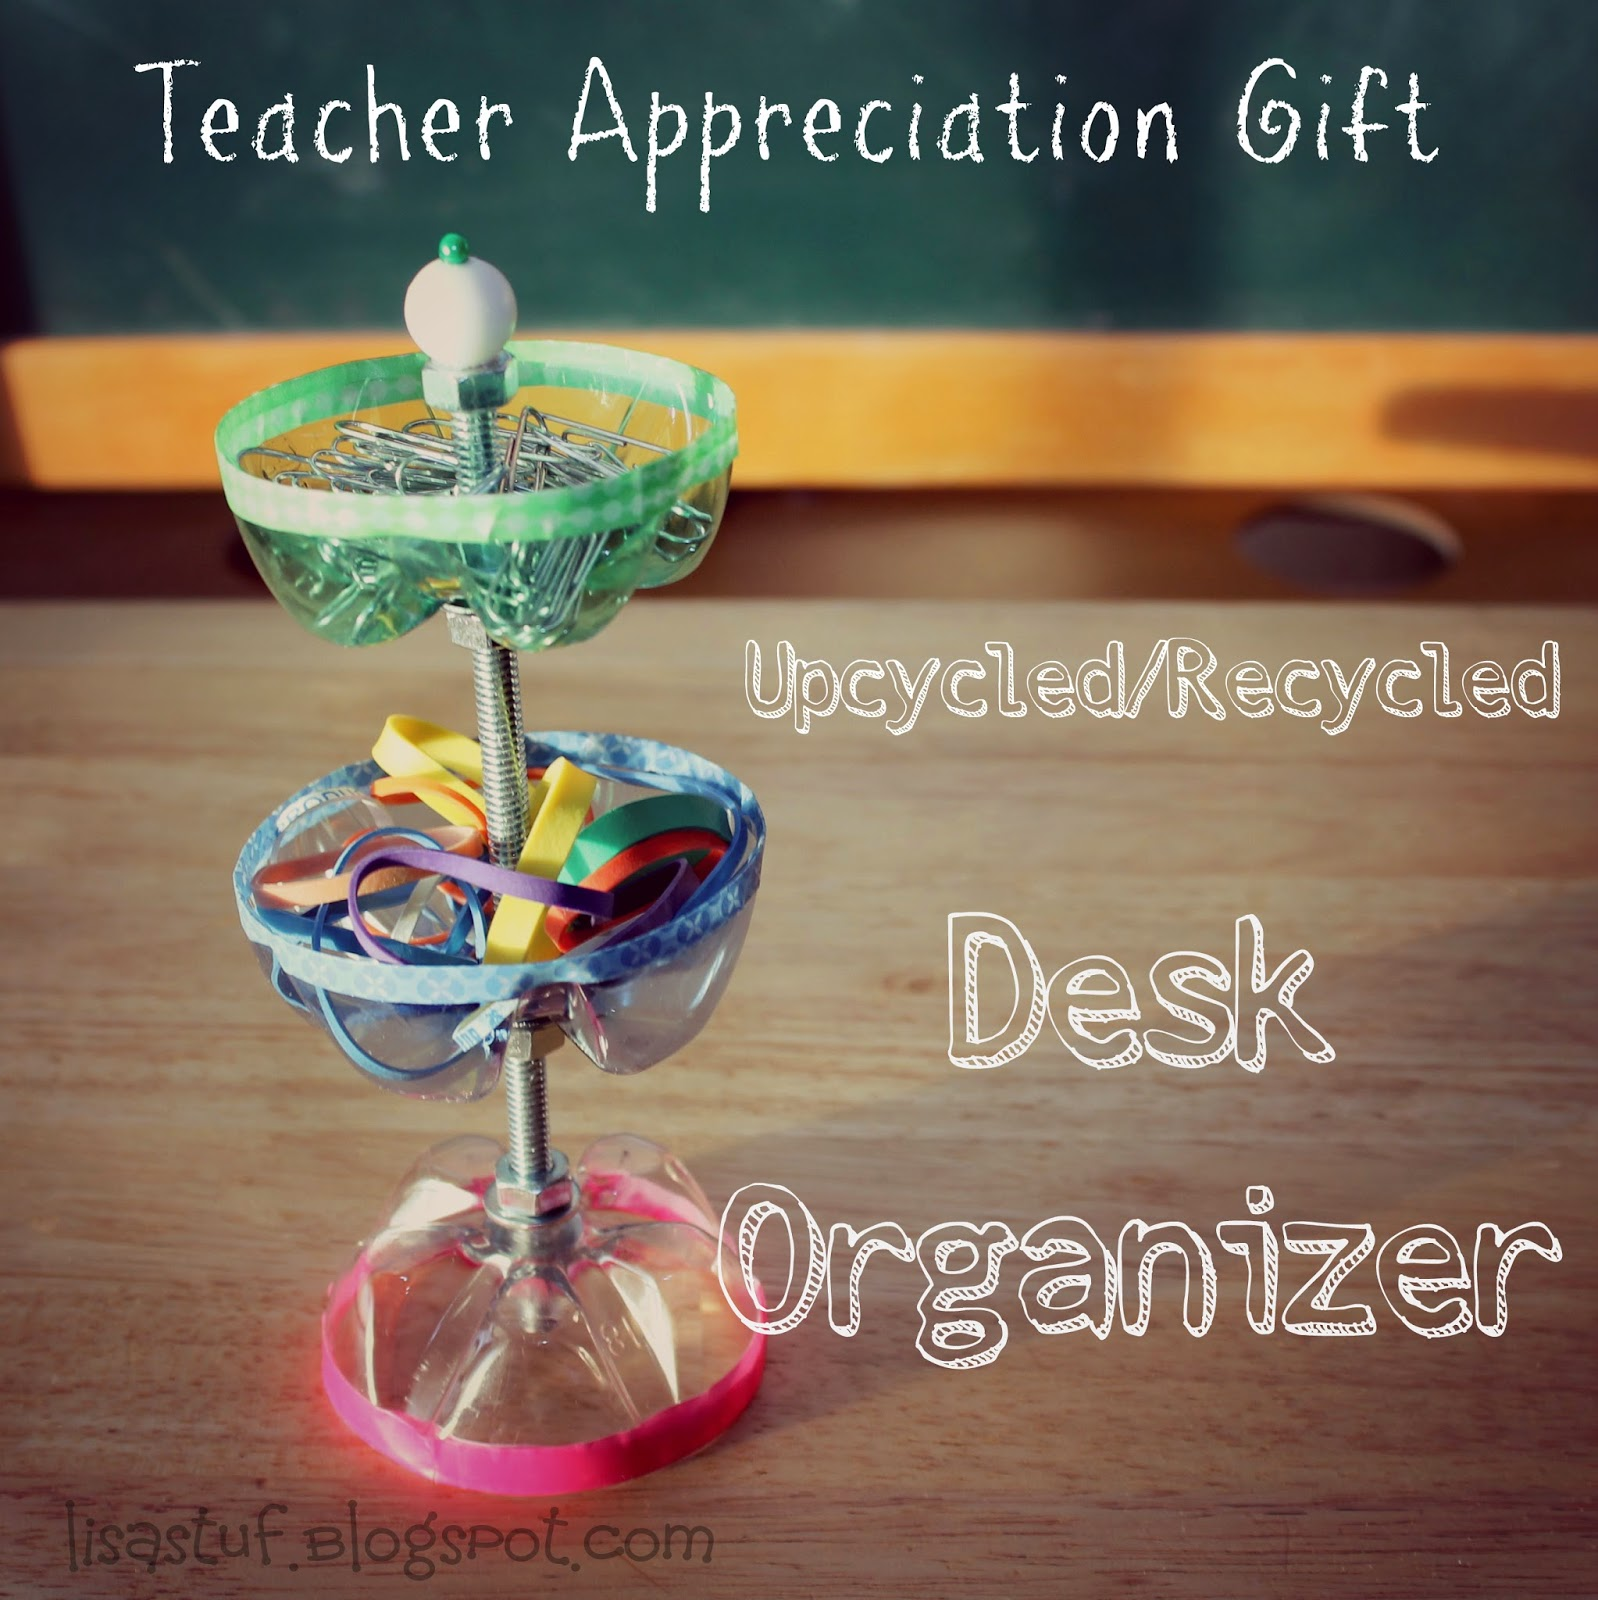 tacl5 desk_organizer_text_dusk_wm